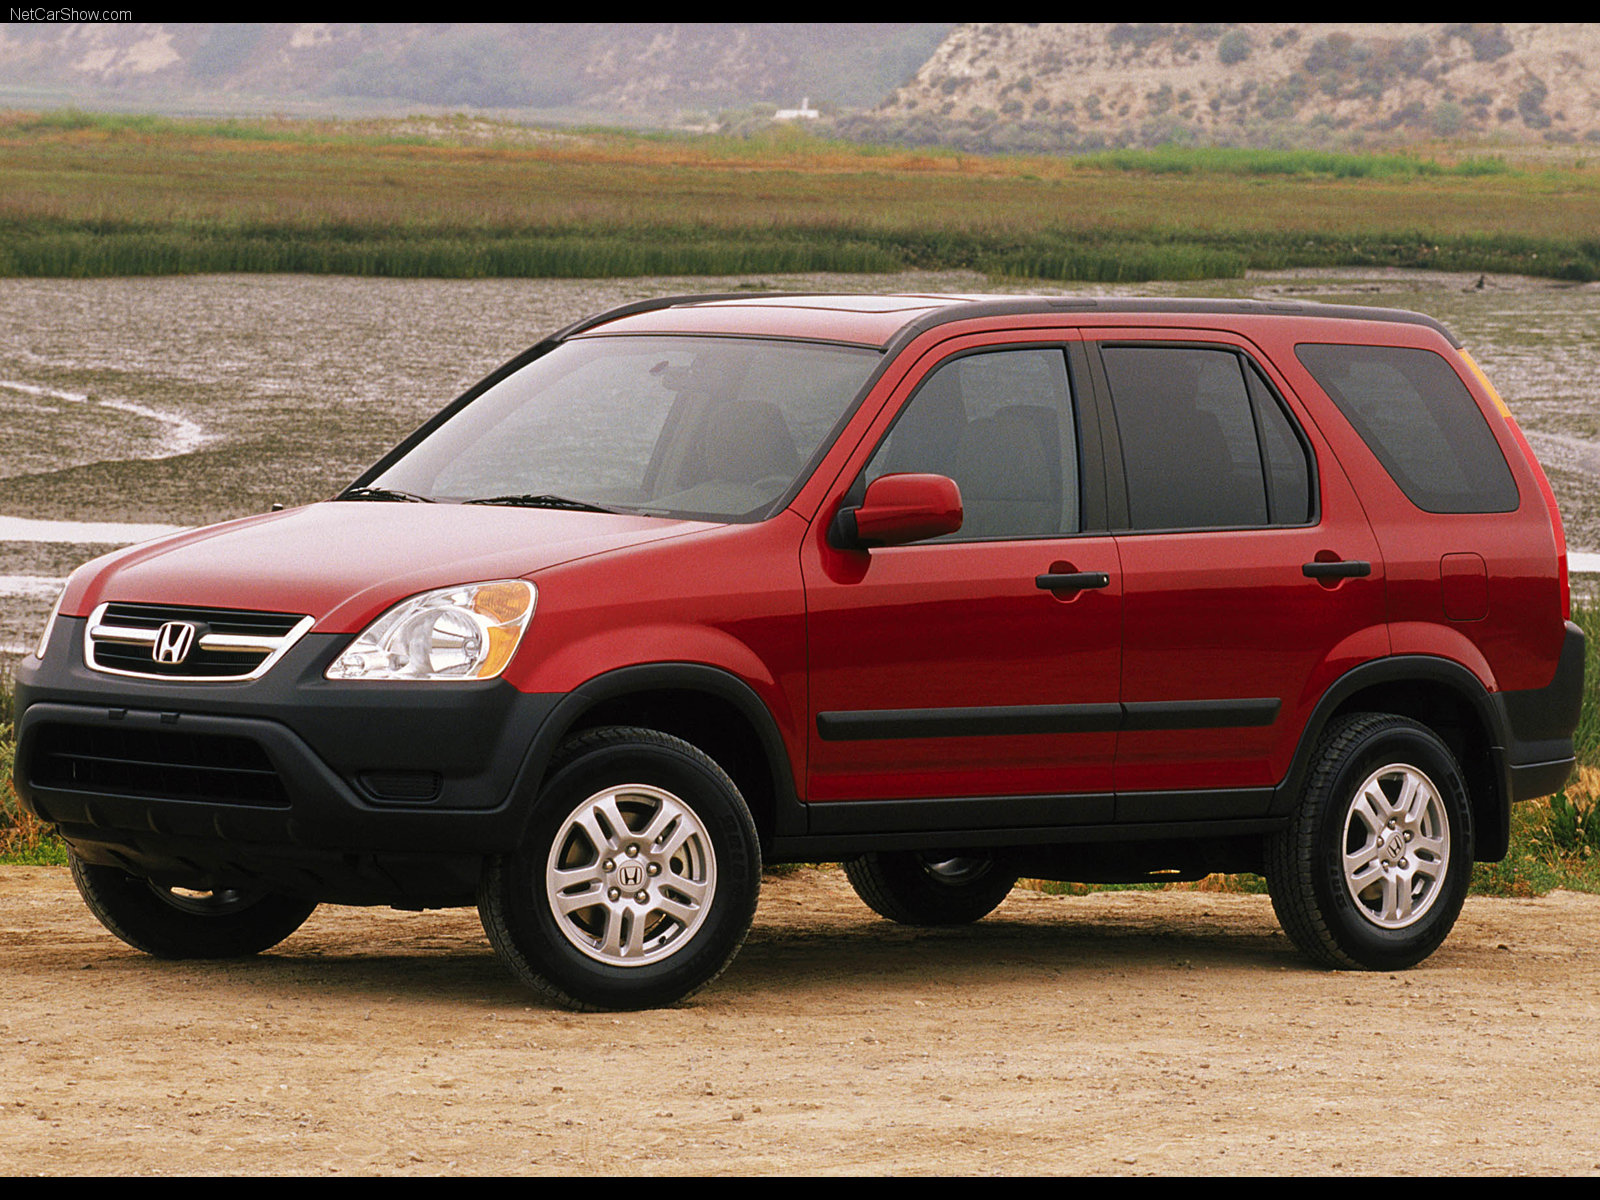 My Perfect Honda Cr V 3dtuning Probably The Best Car Configurator Fuse Box Abbreviations Crossover 2002